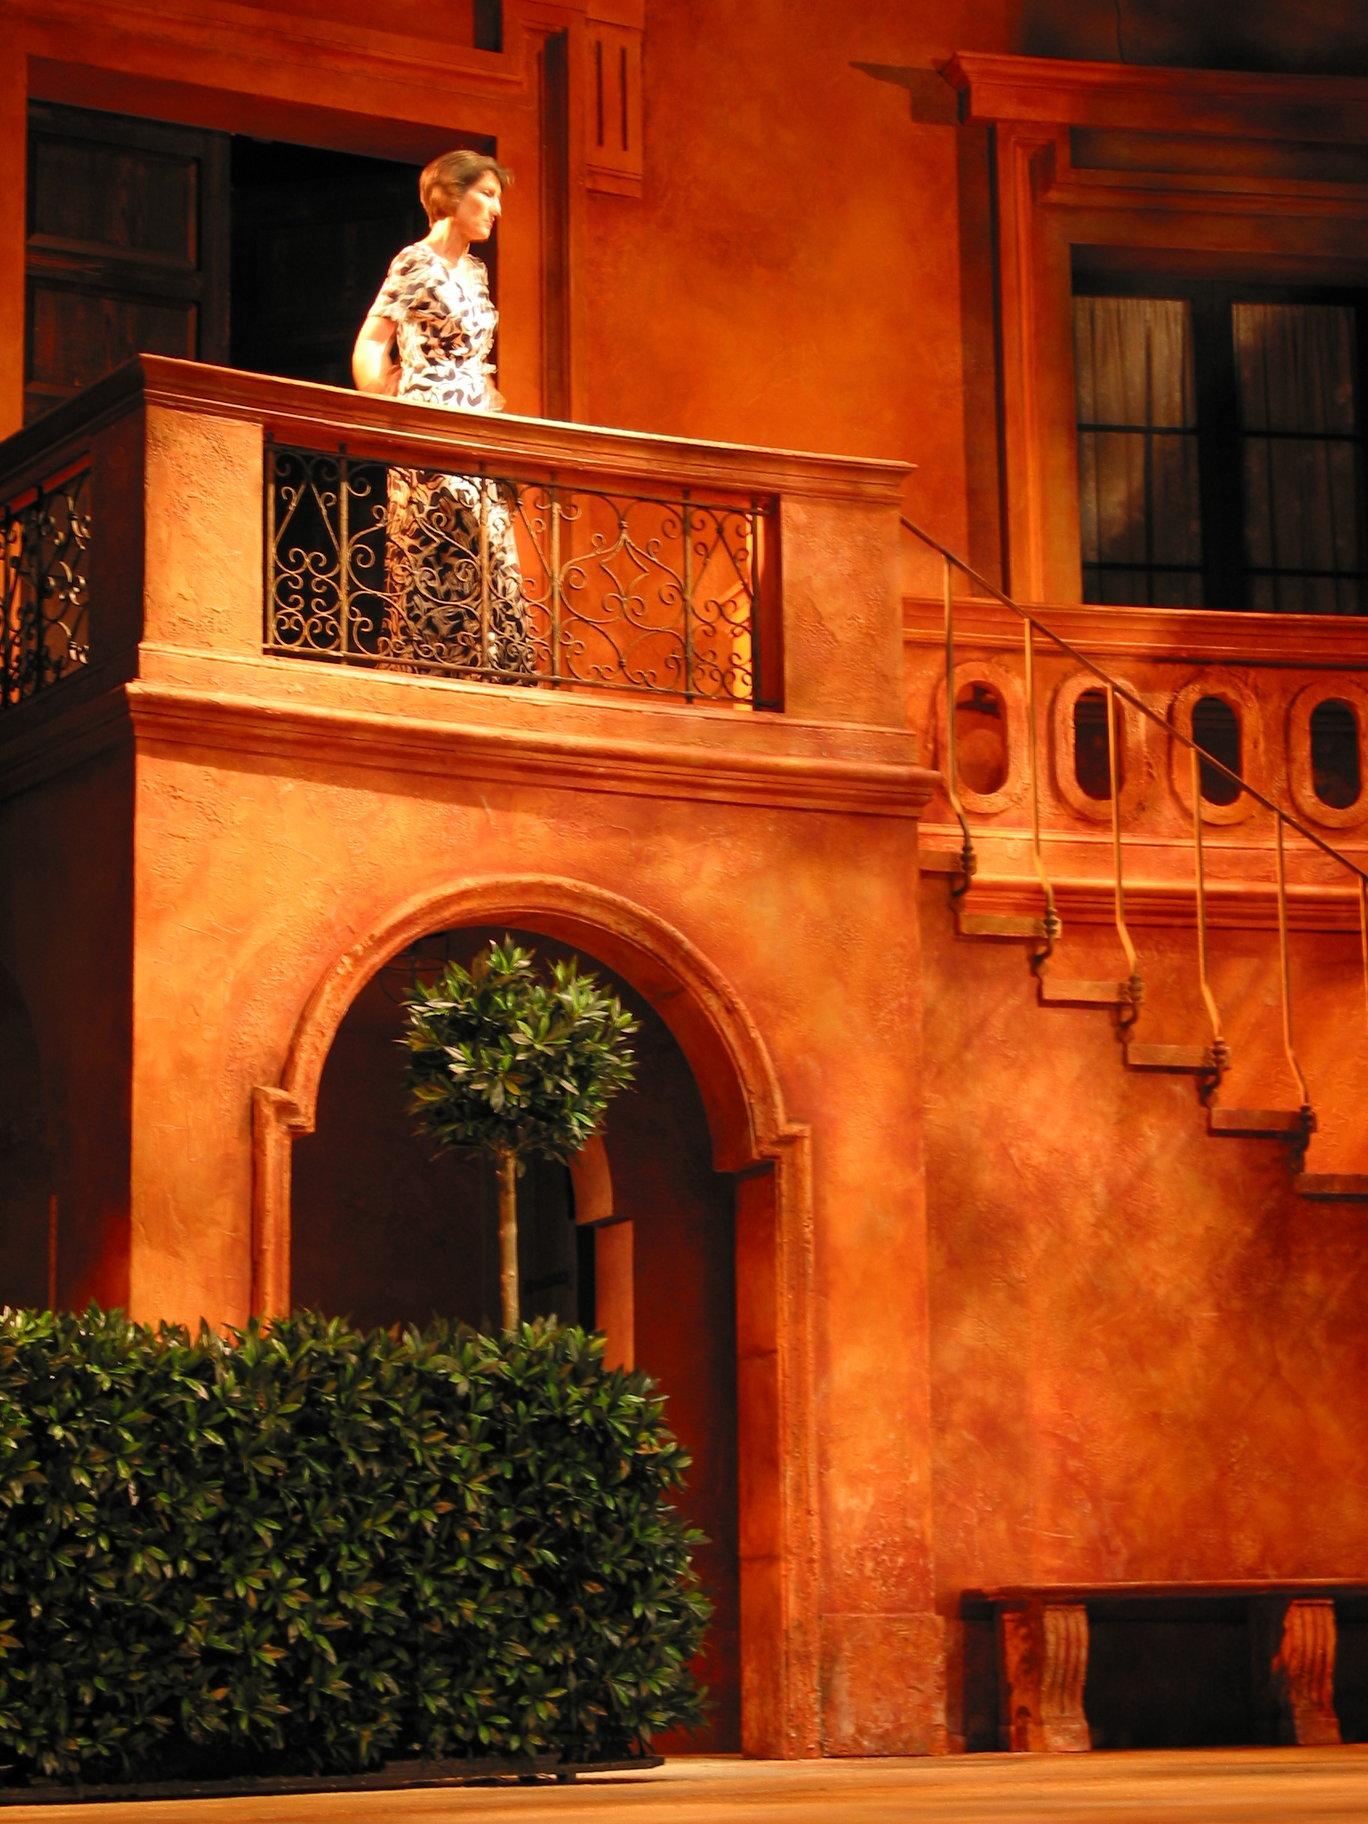 A woman on a balcony in a Mediterranean setting.